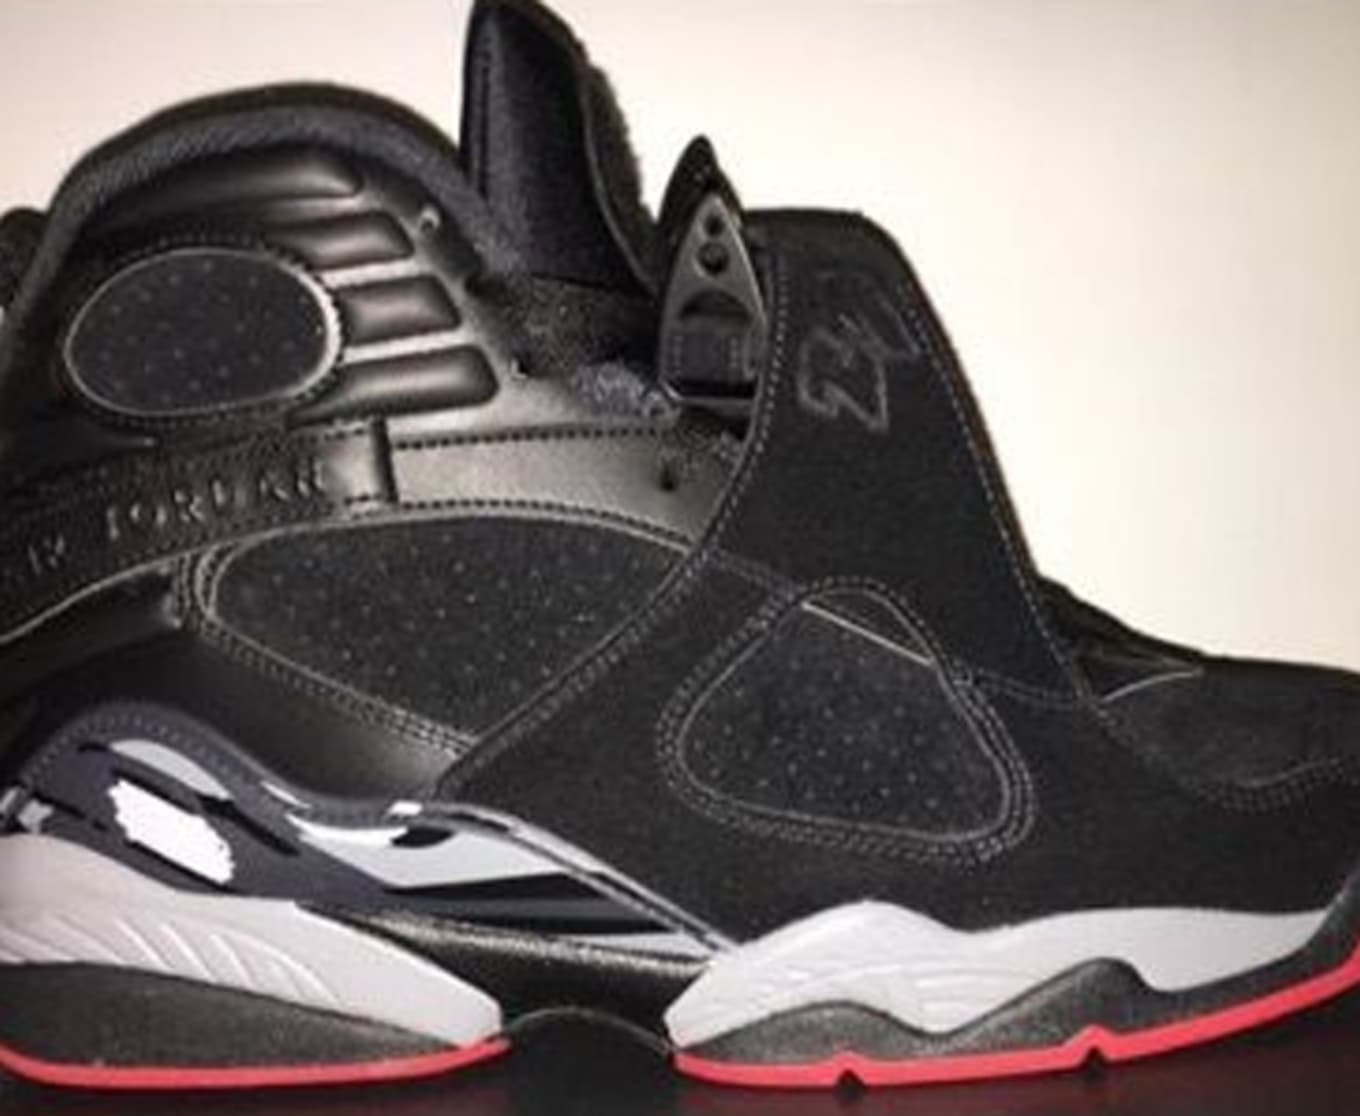 26a015a5ec5bfd  Bred  Air Jordan 8s Releasing This Summer. Here s a first look.